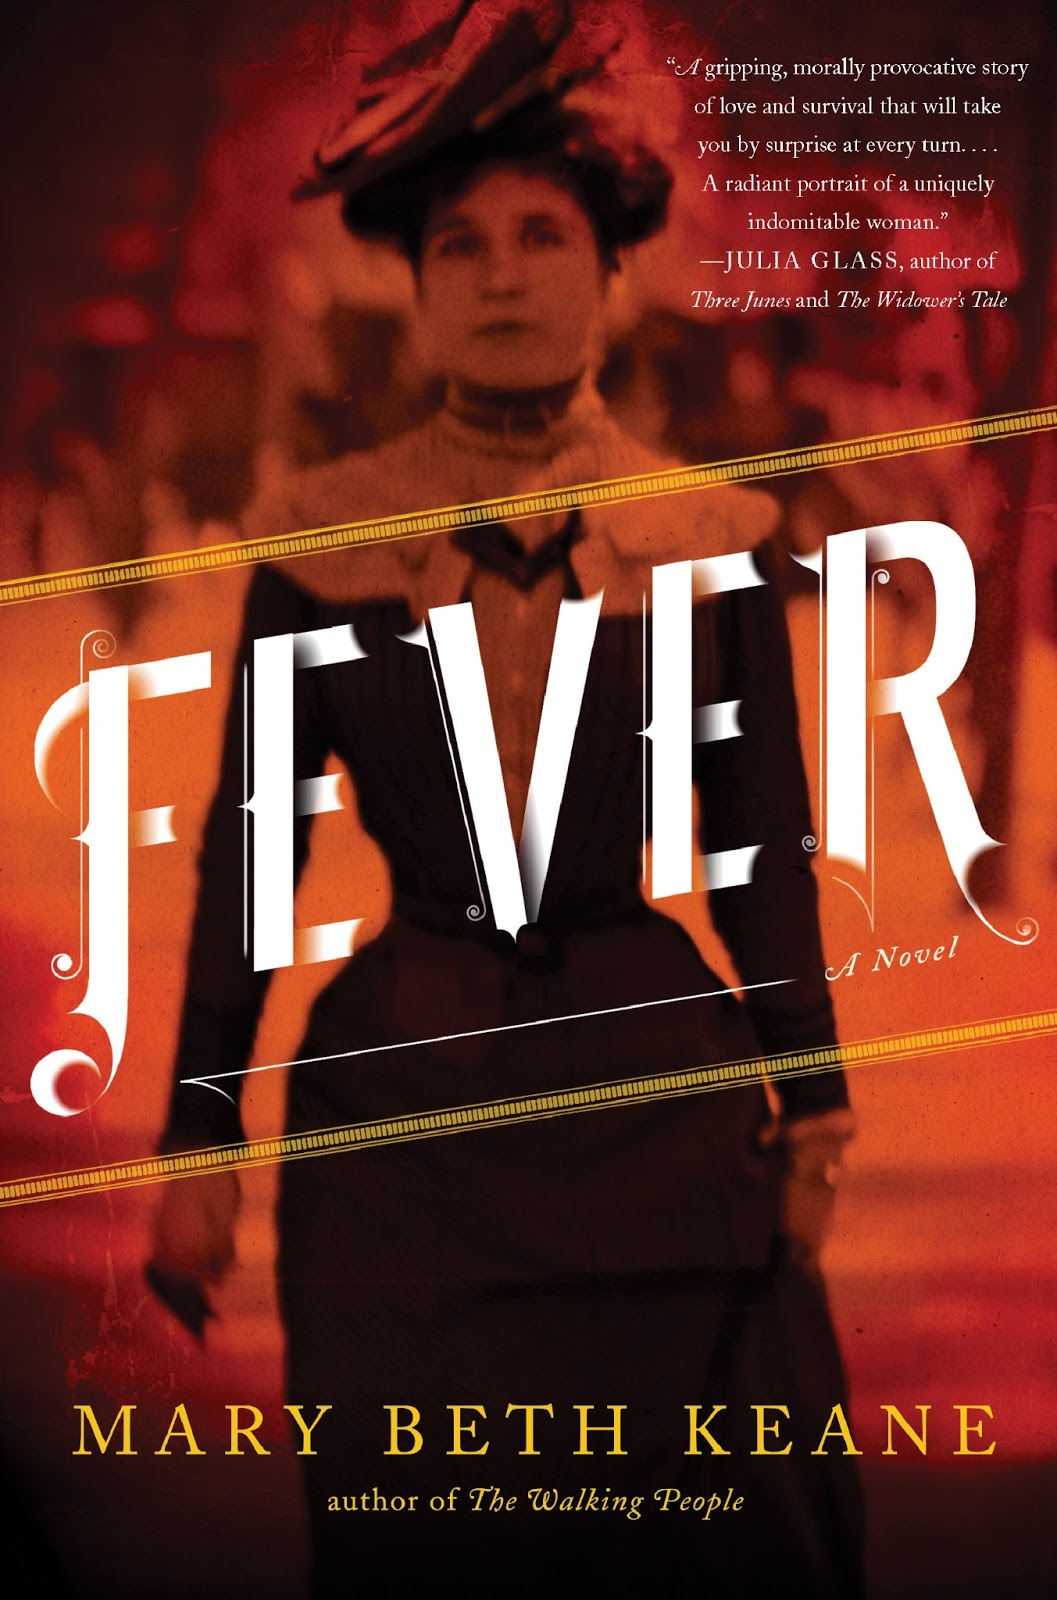 mary beth keane fever book review